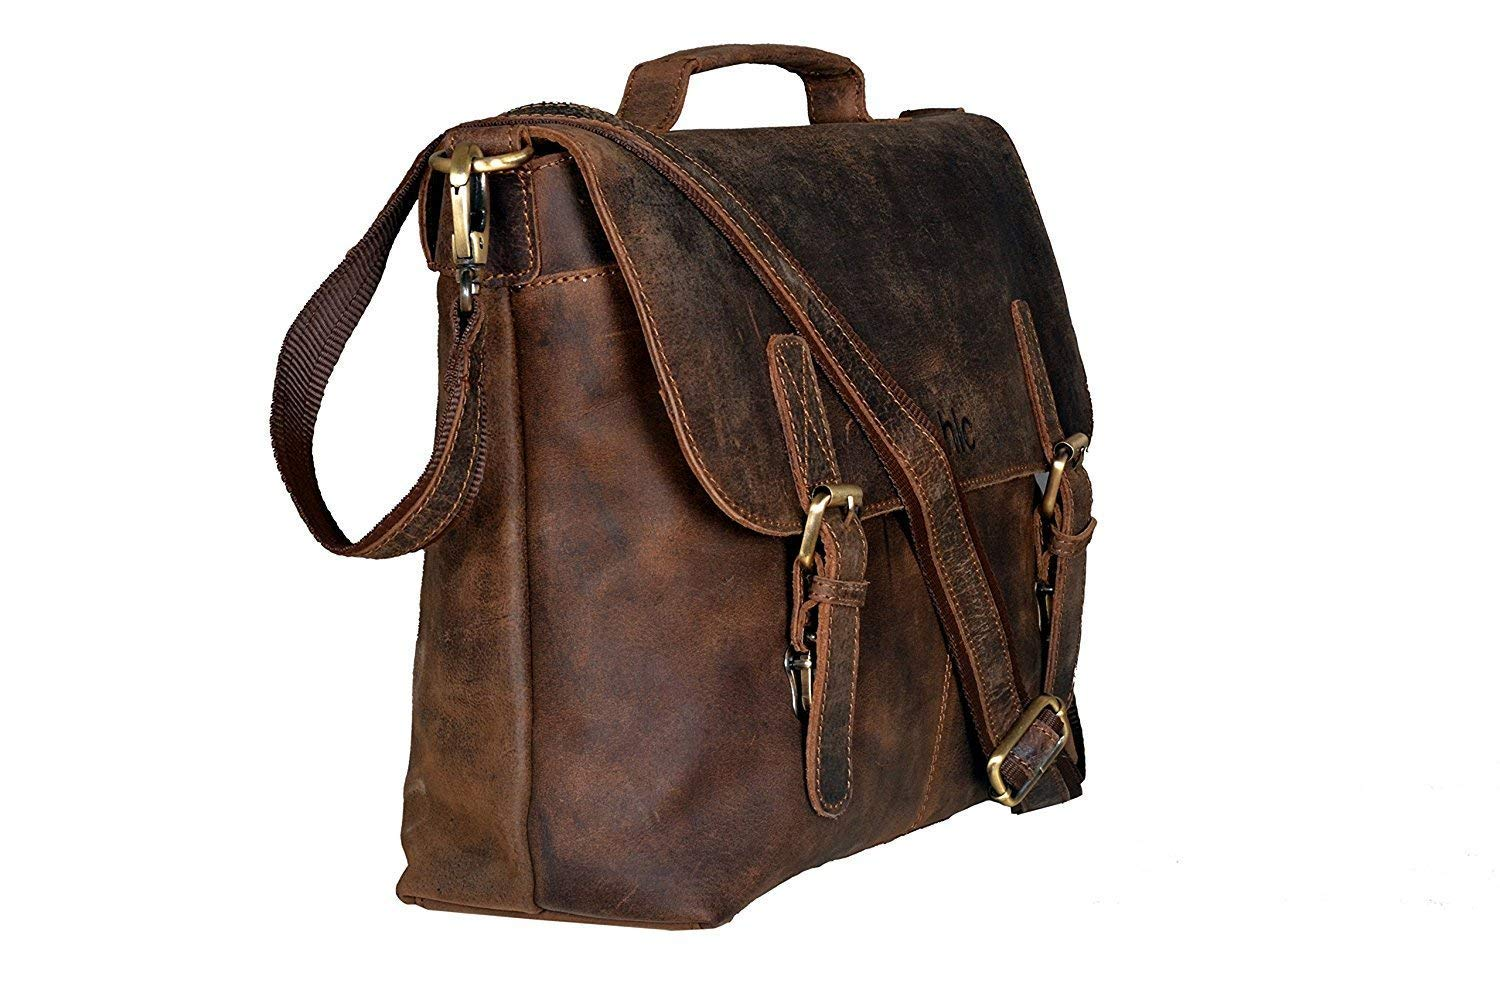 18 Inch Retro Buffalo Hunter Leather Laptop Messenger Bag Office Briefcase College Bag for Men and Women by handolederco. (Image #2)